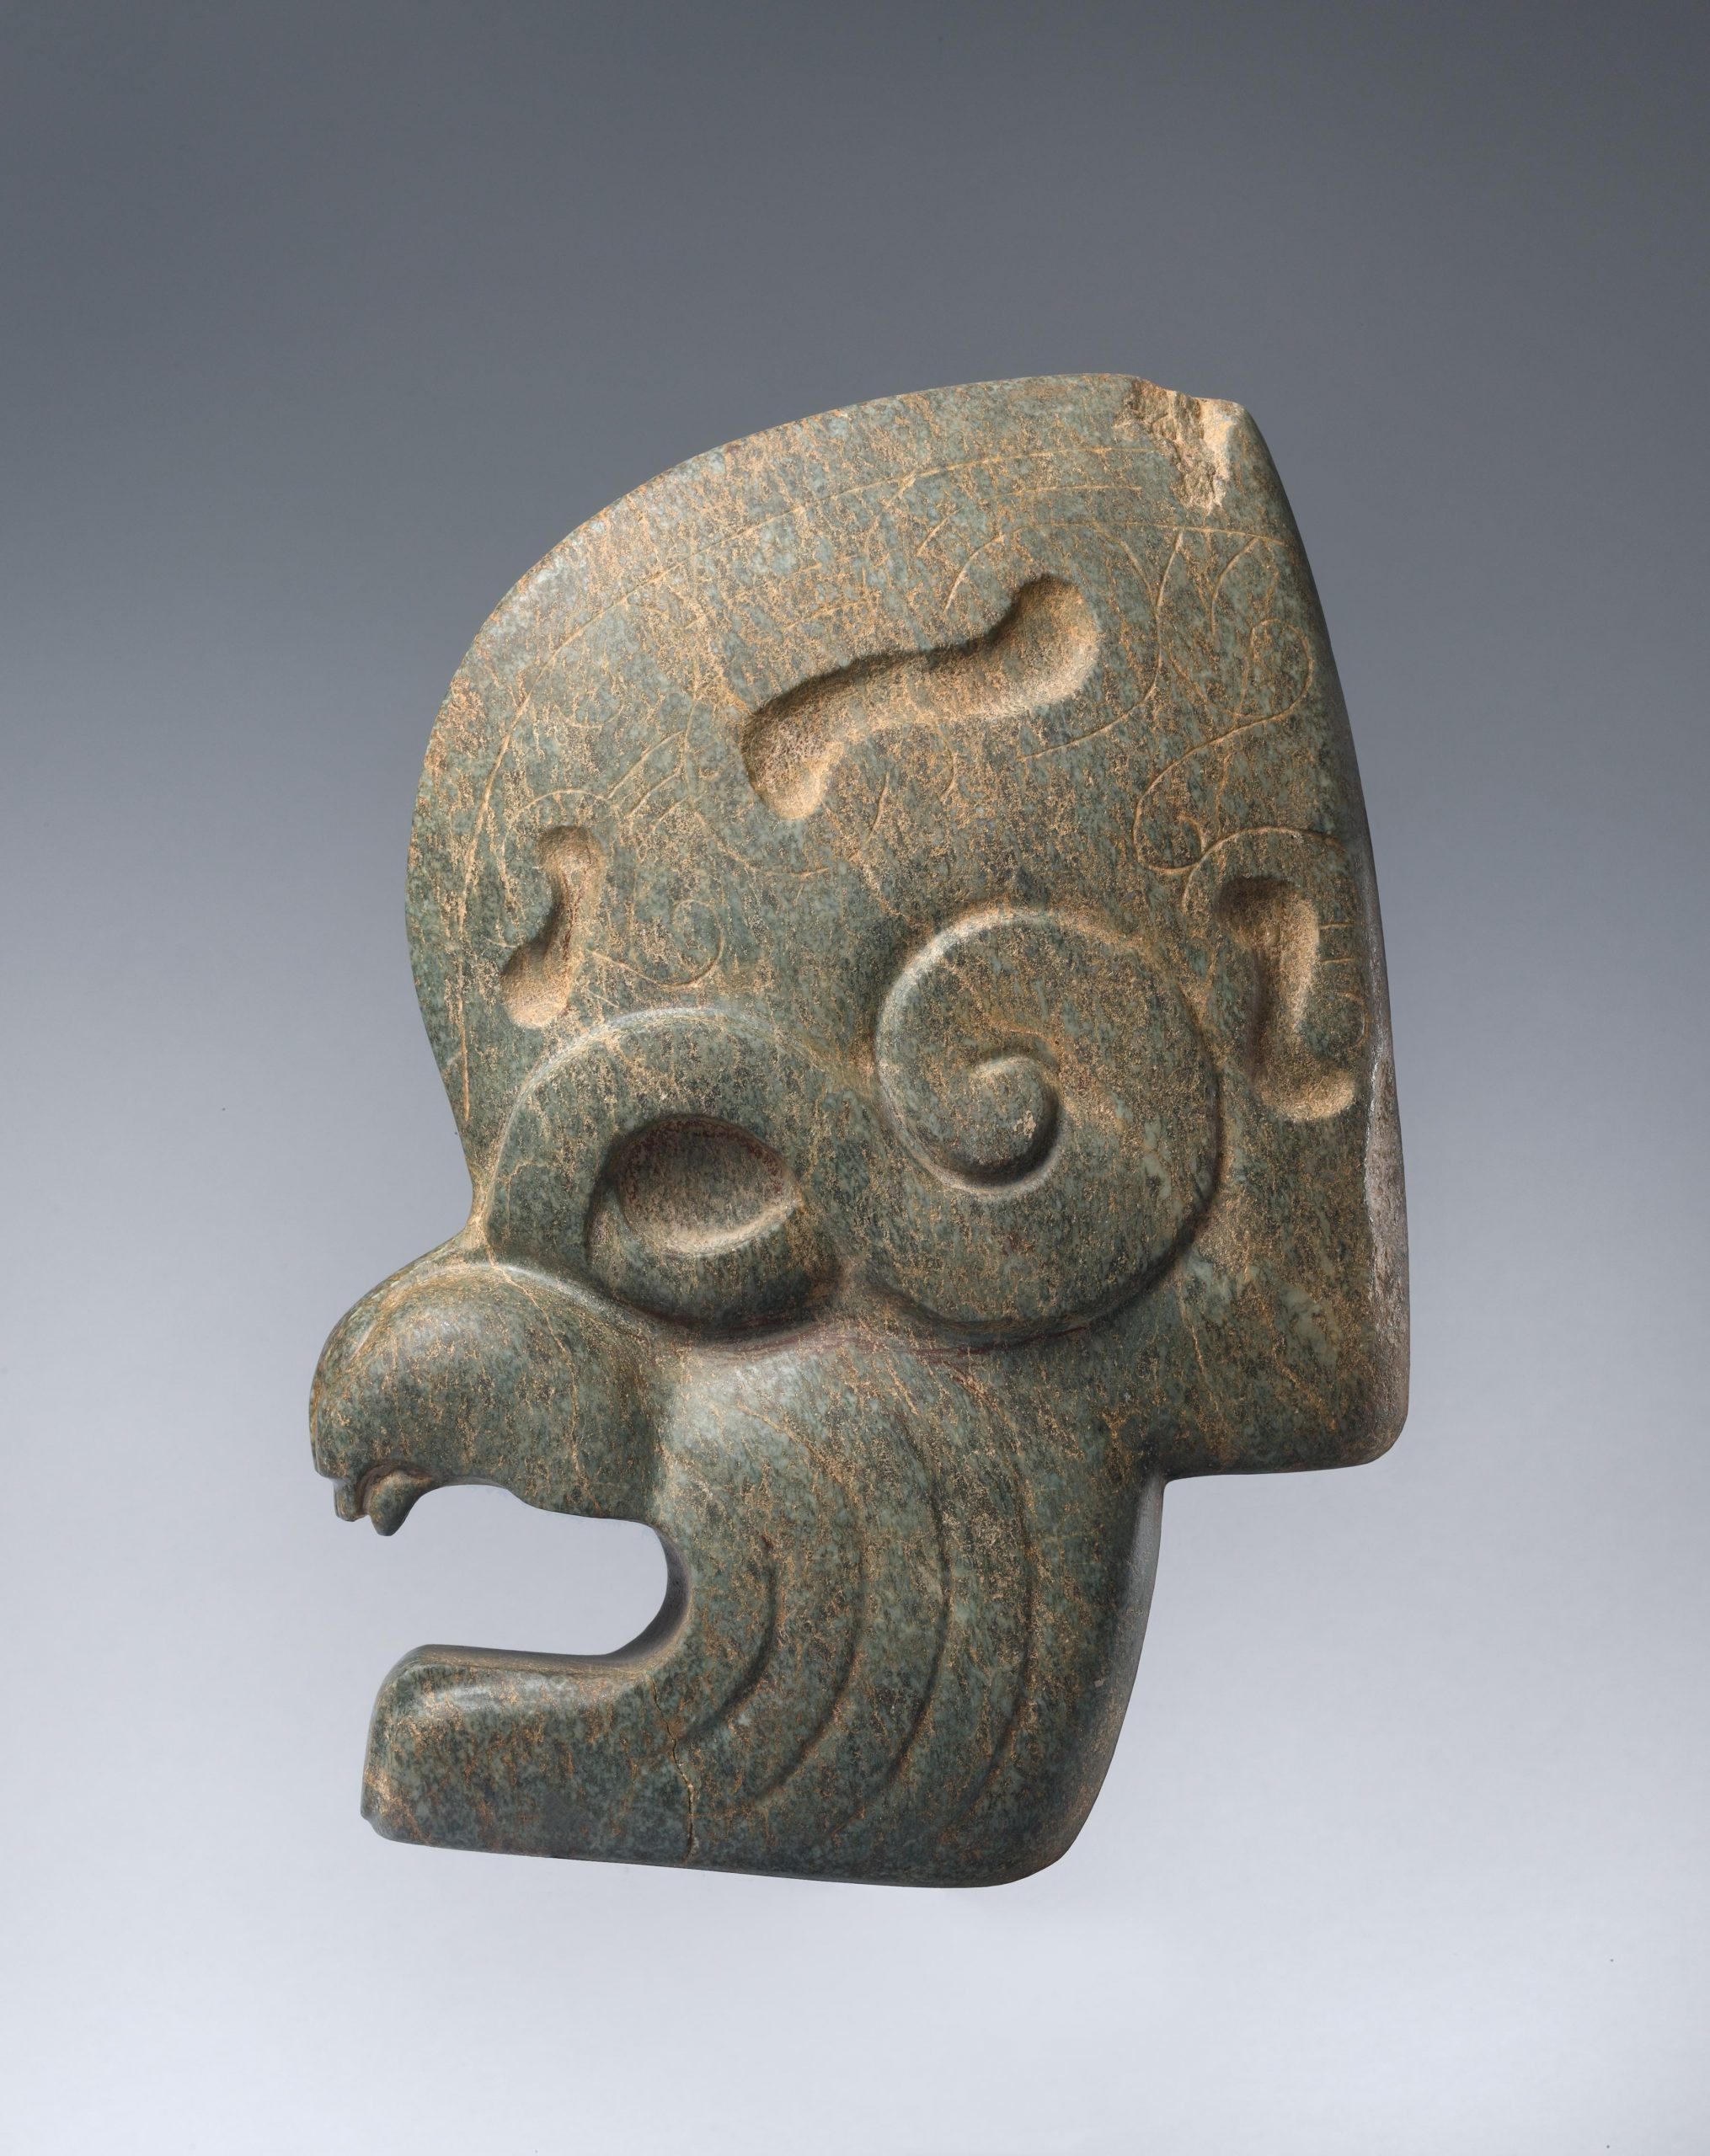 Metate sculpture stylized to resemble an eagle.